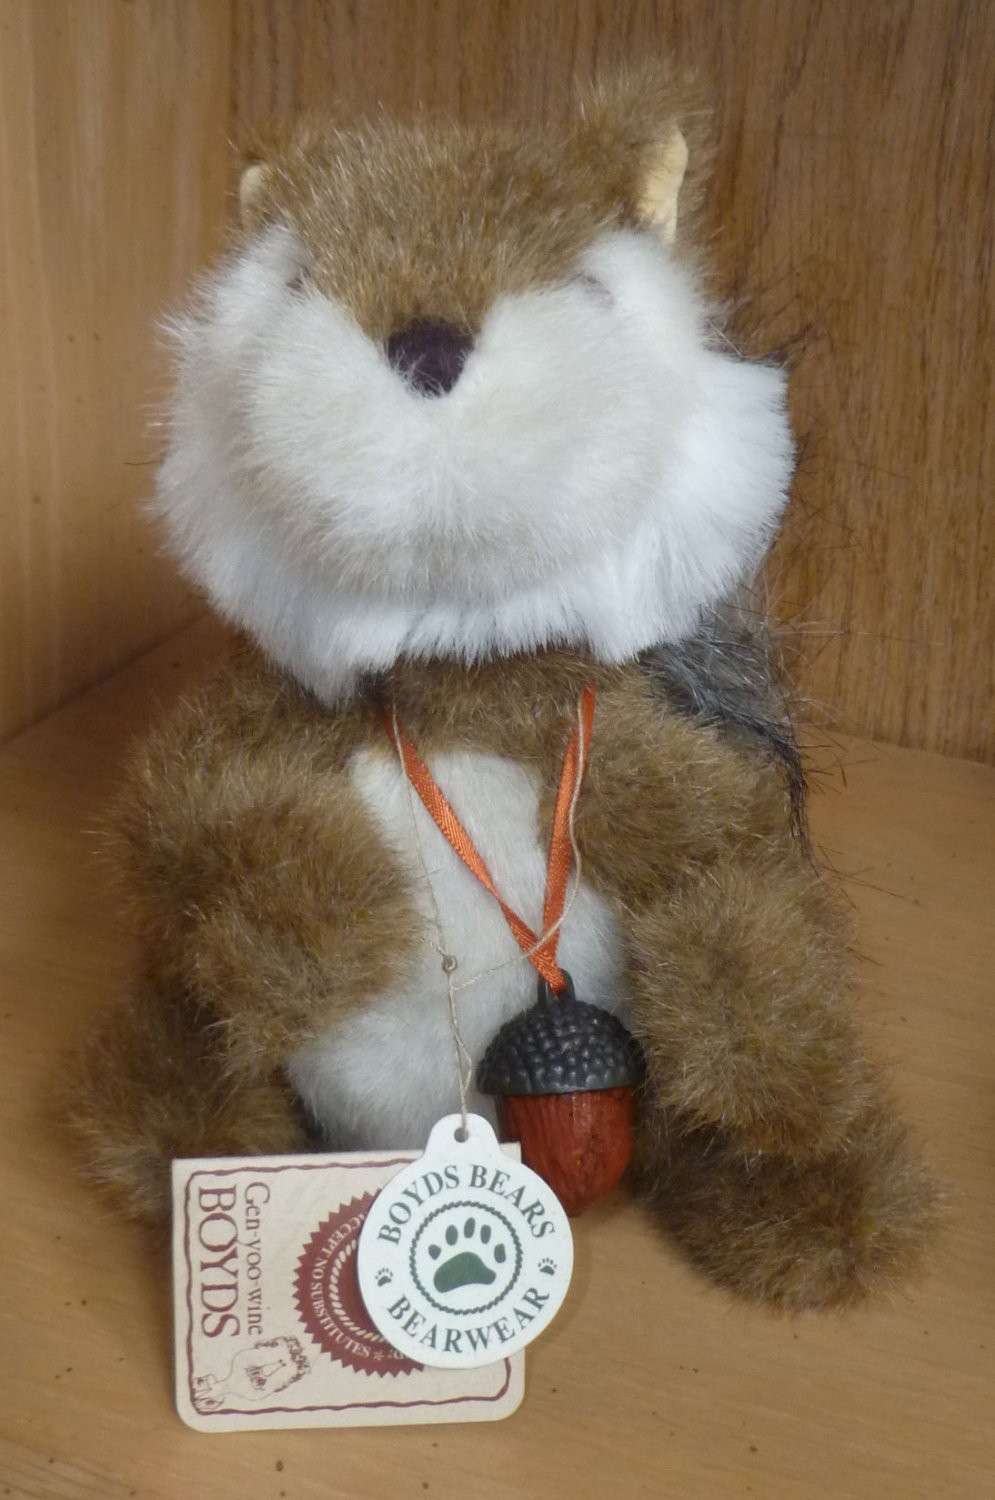 Boyds Bears Collection 7 Inch Merle B. Squirrel with Metal Acorn NWT